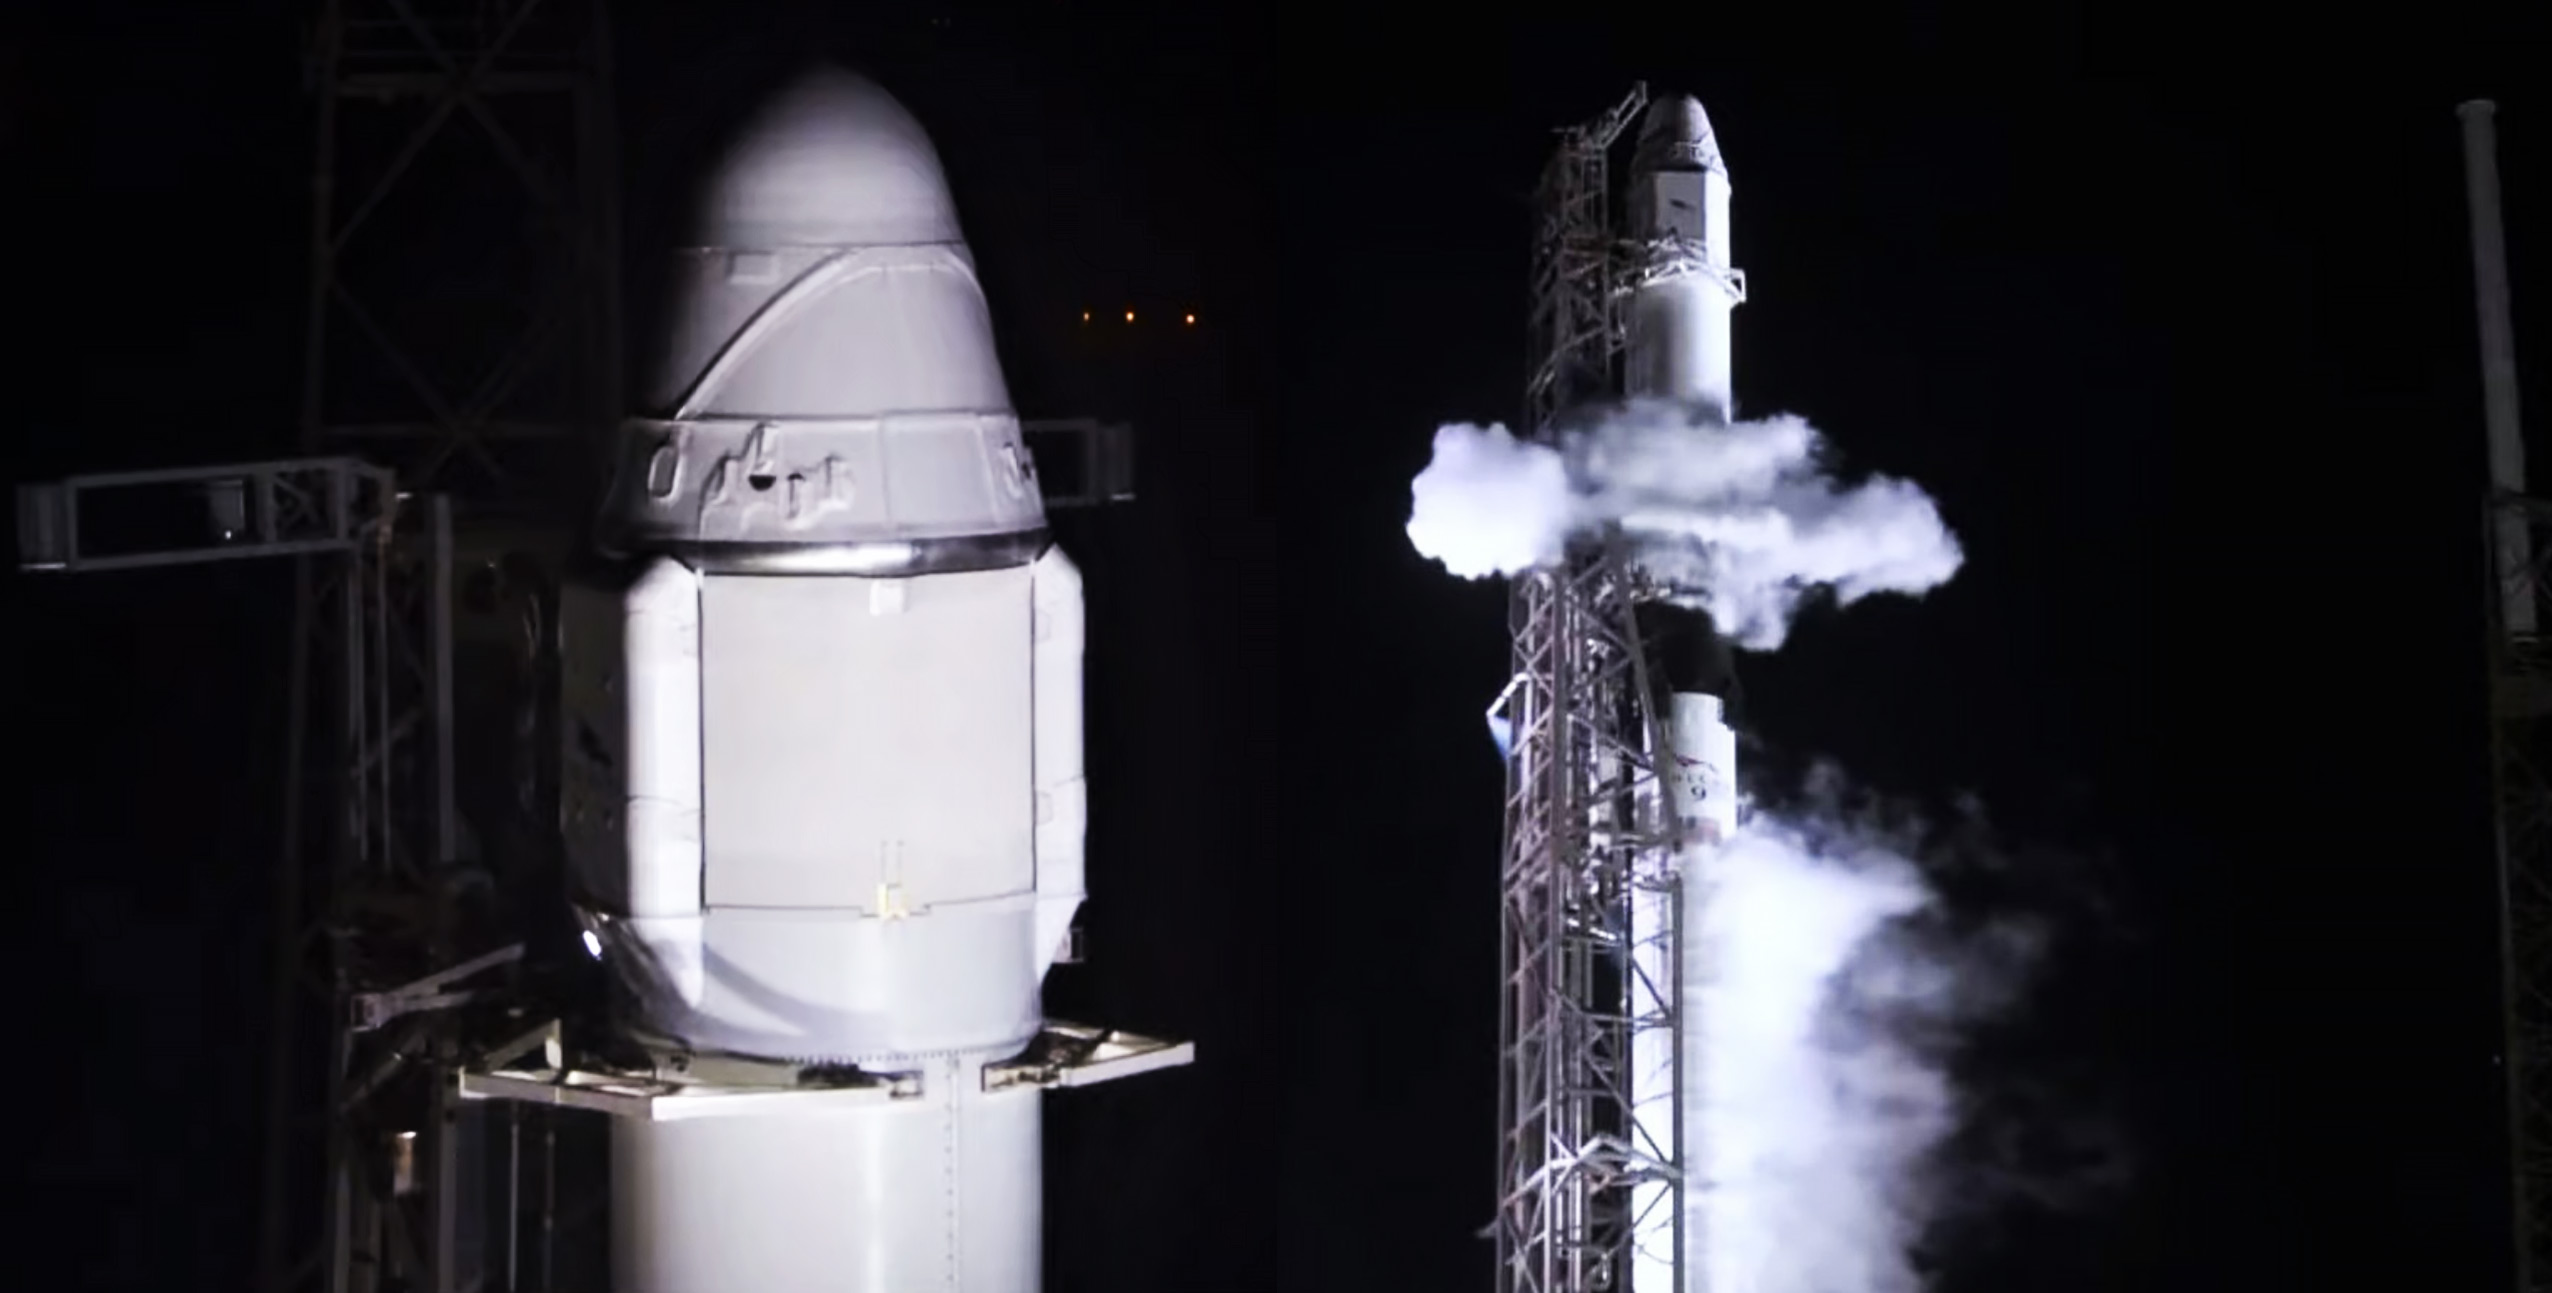 Spacex Scrubs Cargo Dragon Falcon 9 Launch Due To Drone